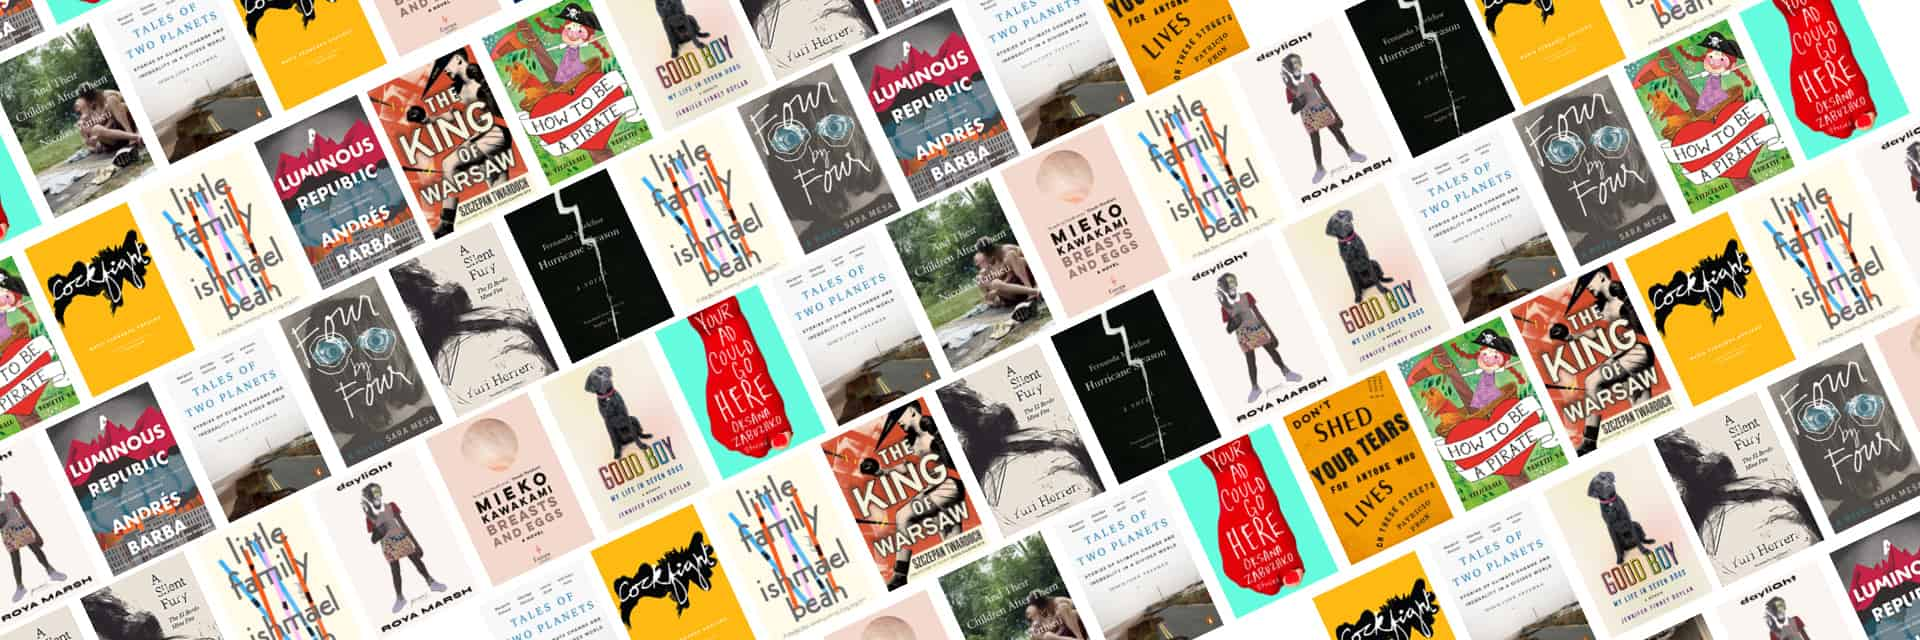 PEN World Voices 2020: A Festival Reading List Book Covers